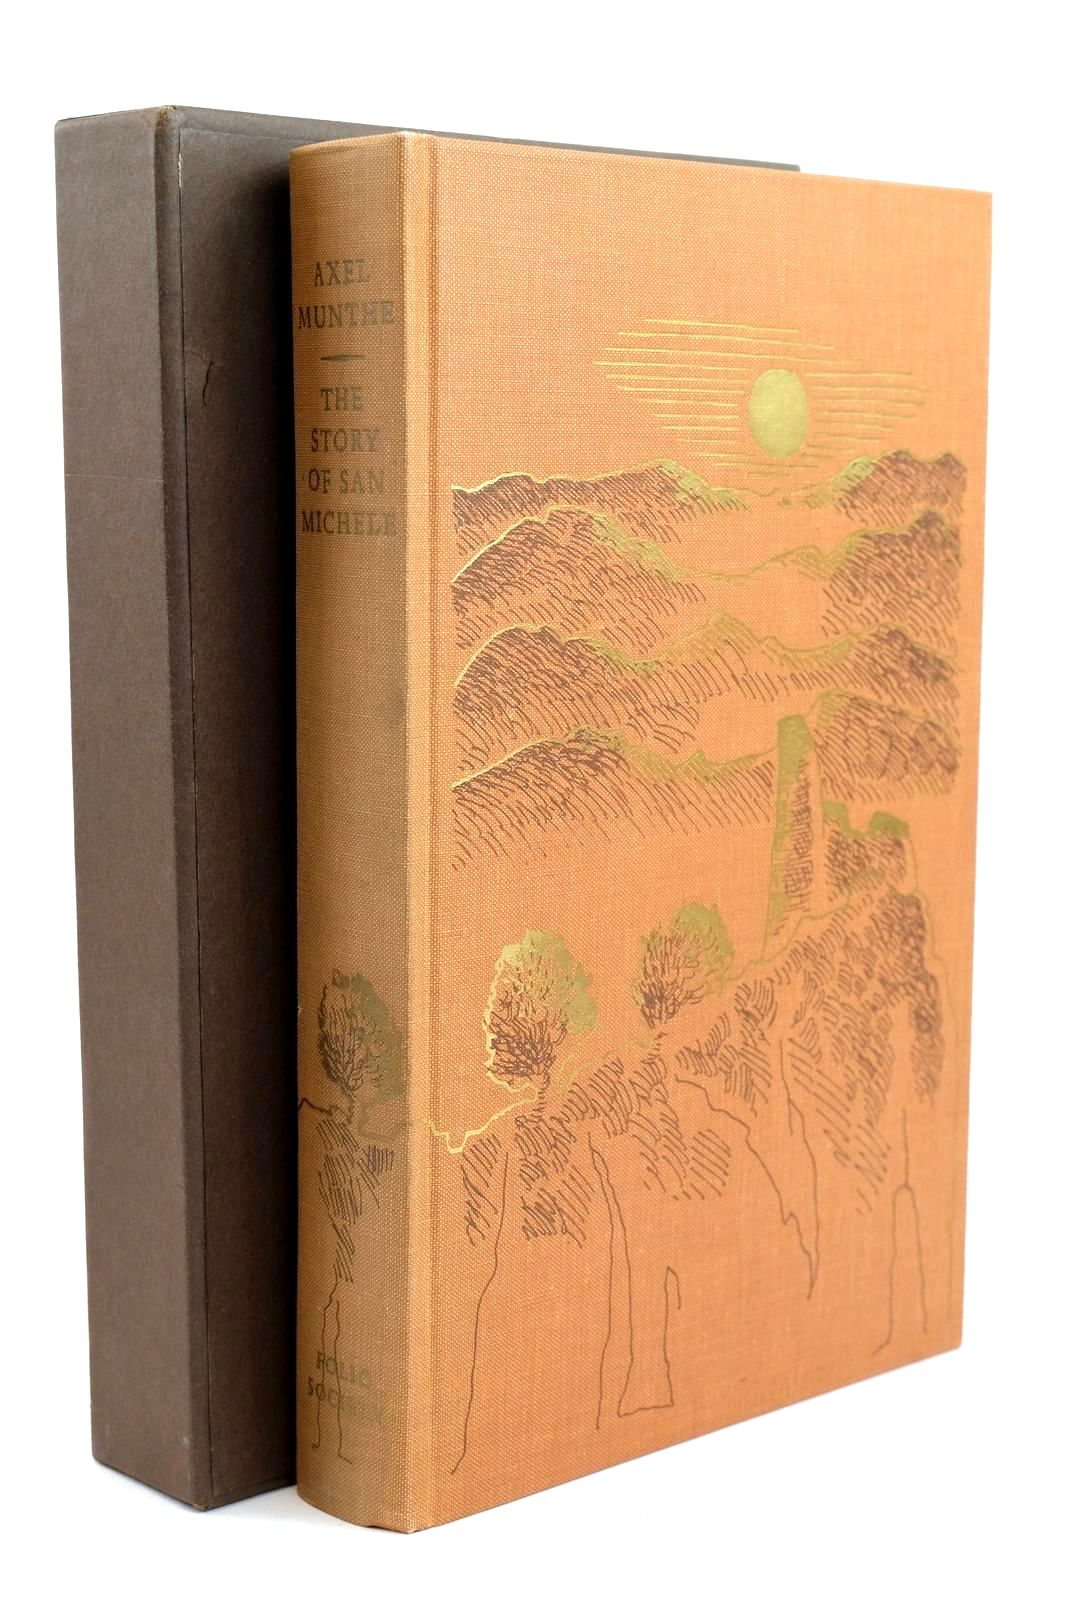 Photo of THE STORY OF SAN MICHELE written by Munthe, Axel published by Folio Society (STOCK CODE: 1320411)  for sale by Stella & Rose's Books